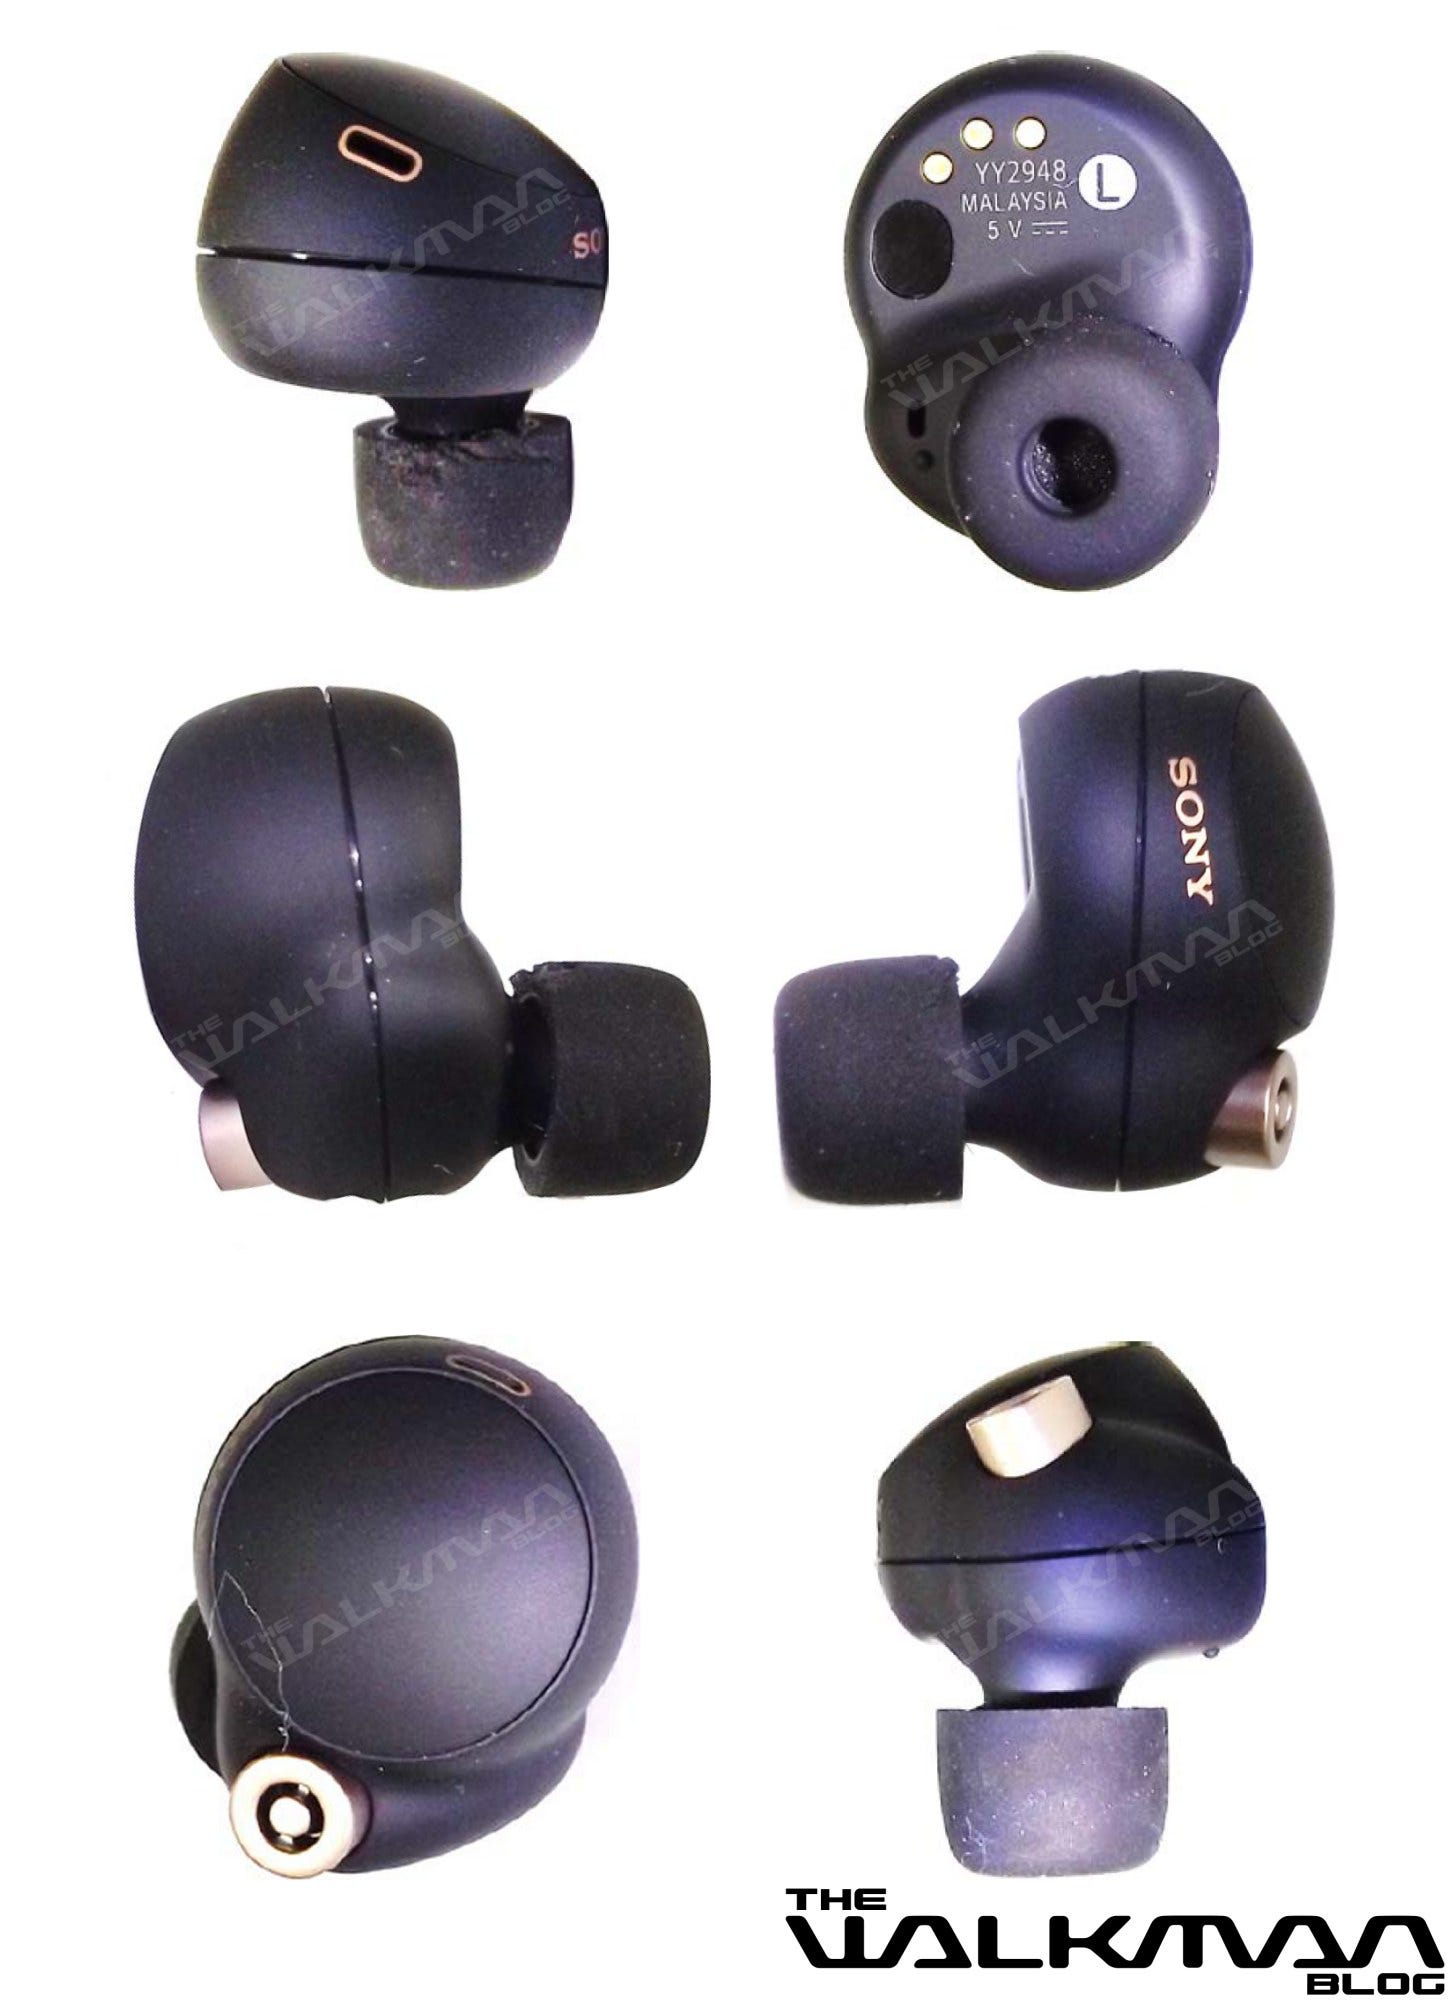 A leaked look at the left Sony WF-1000MX4 earbud